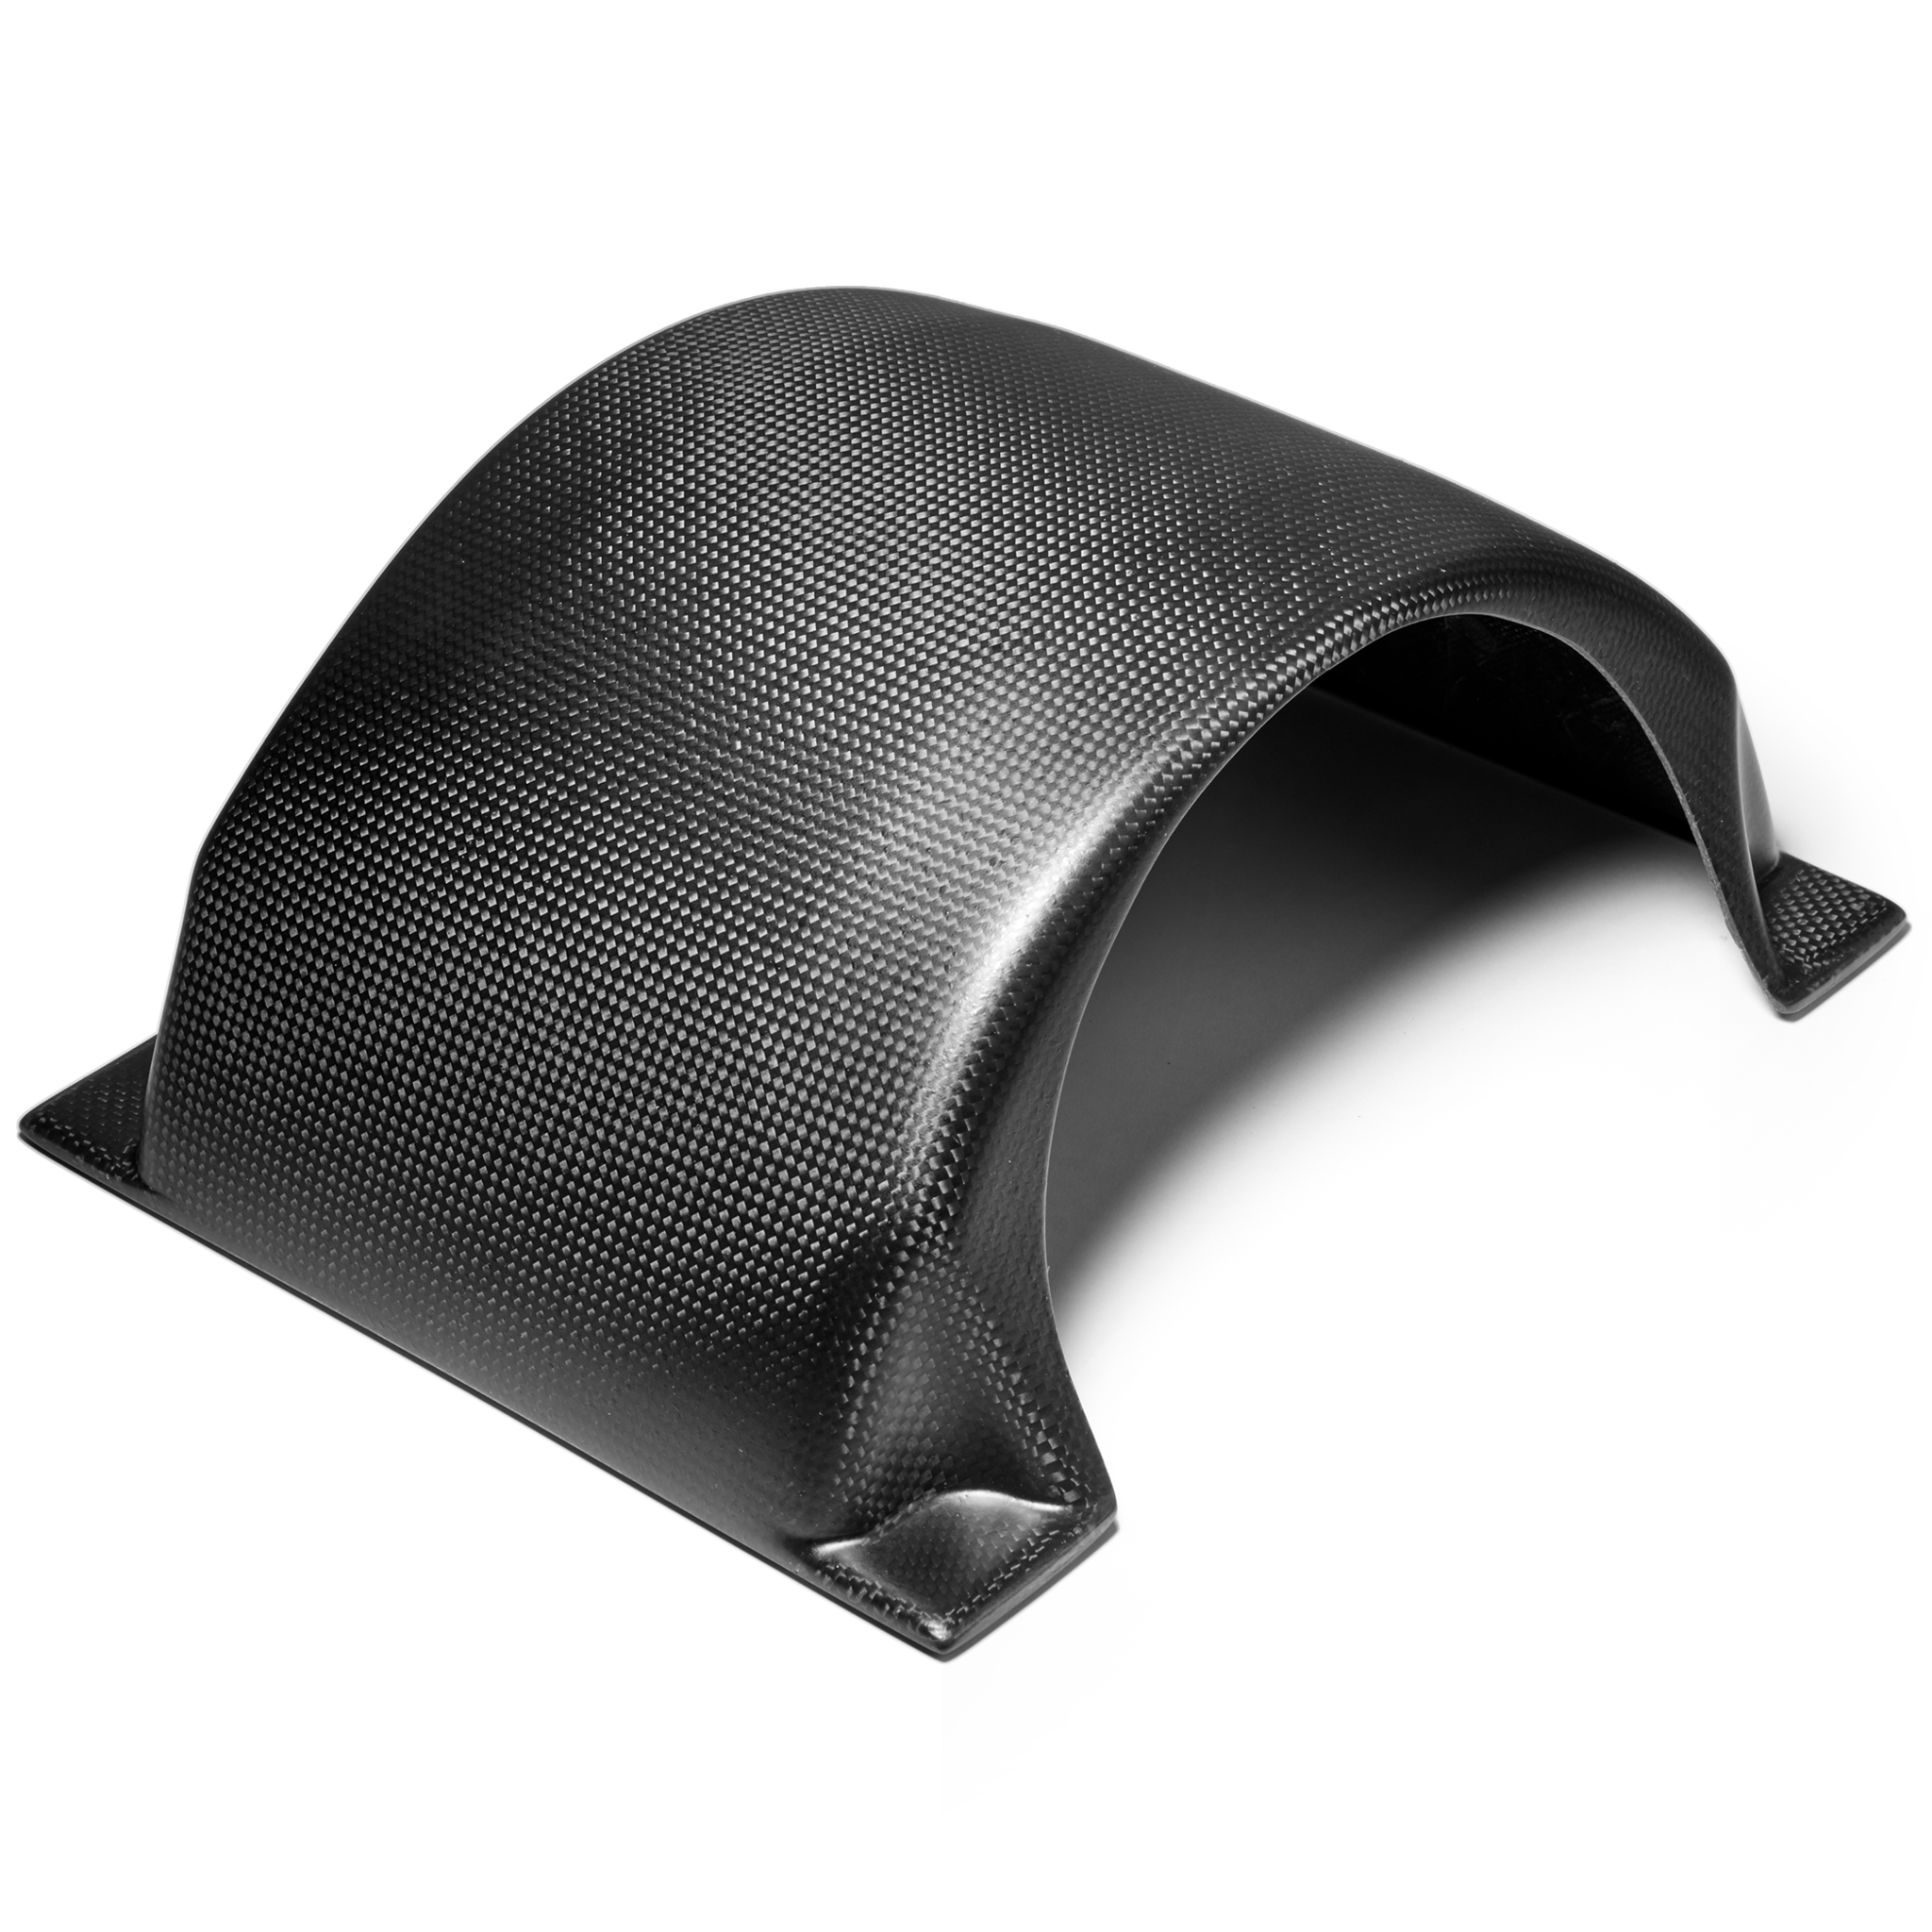 Onewheel Fender Craft and Ride - Onewheel Carbon Fiber Fender Magnetic